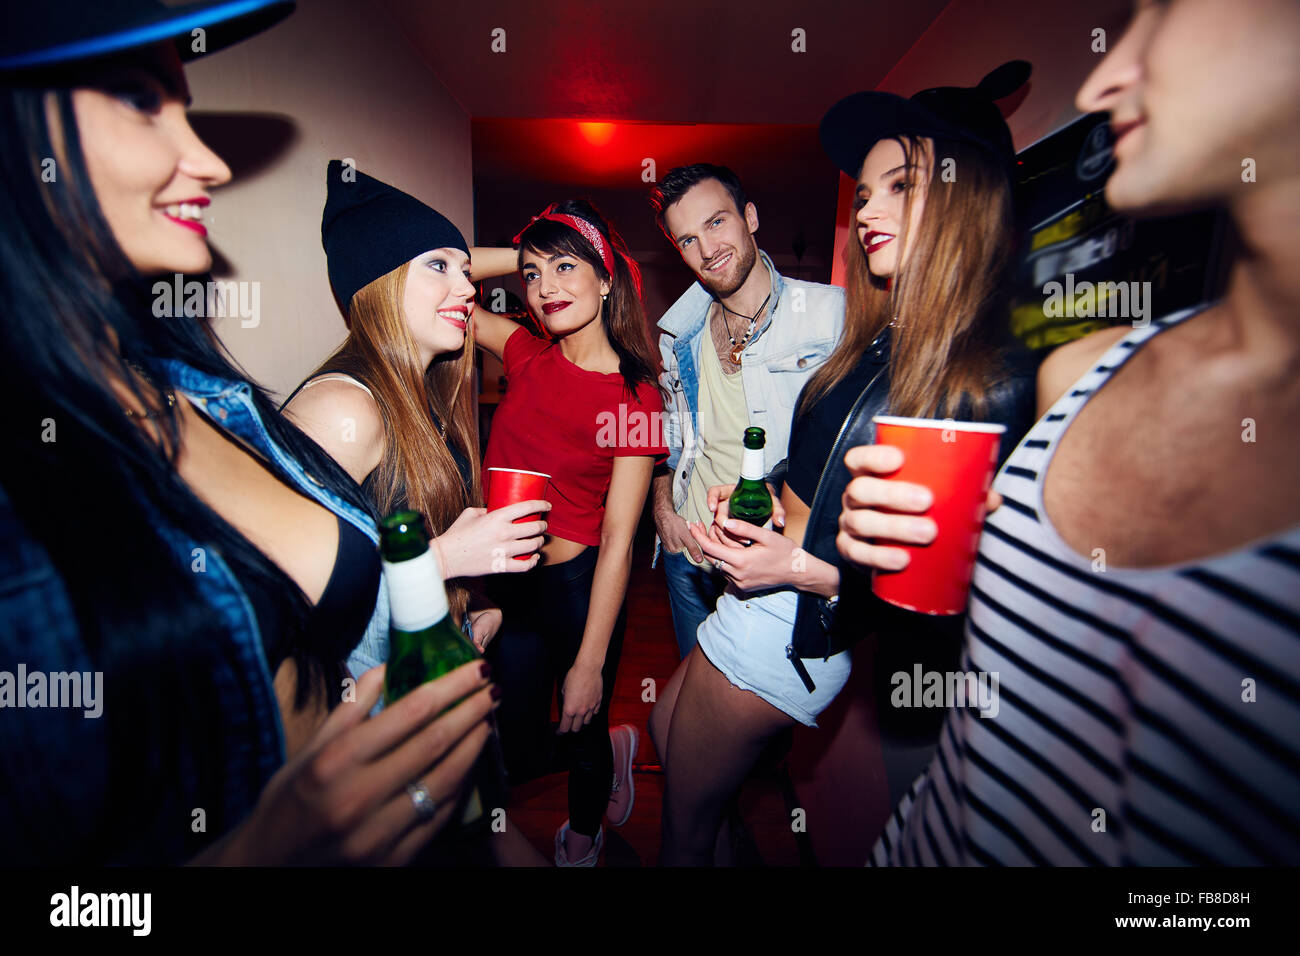 Young stylish people with drinks gathering in bar - Stock Image